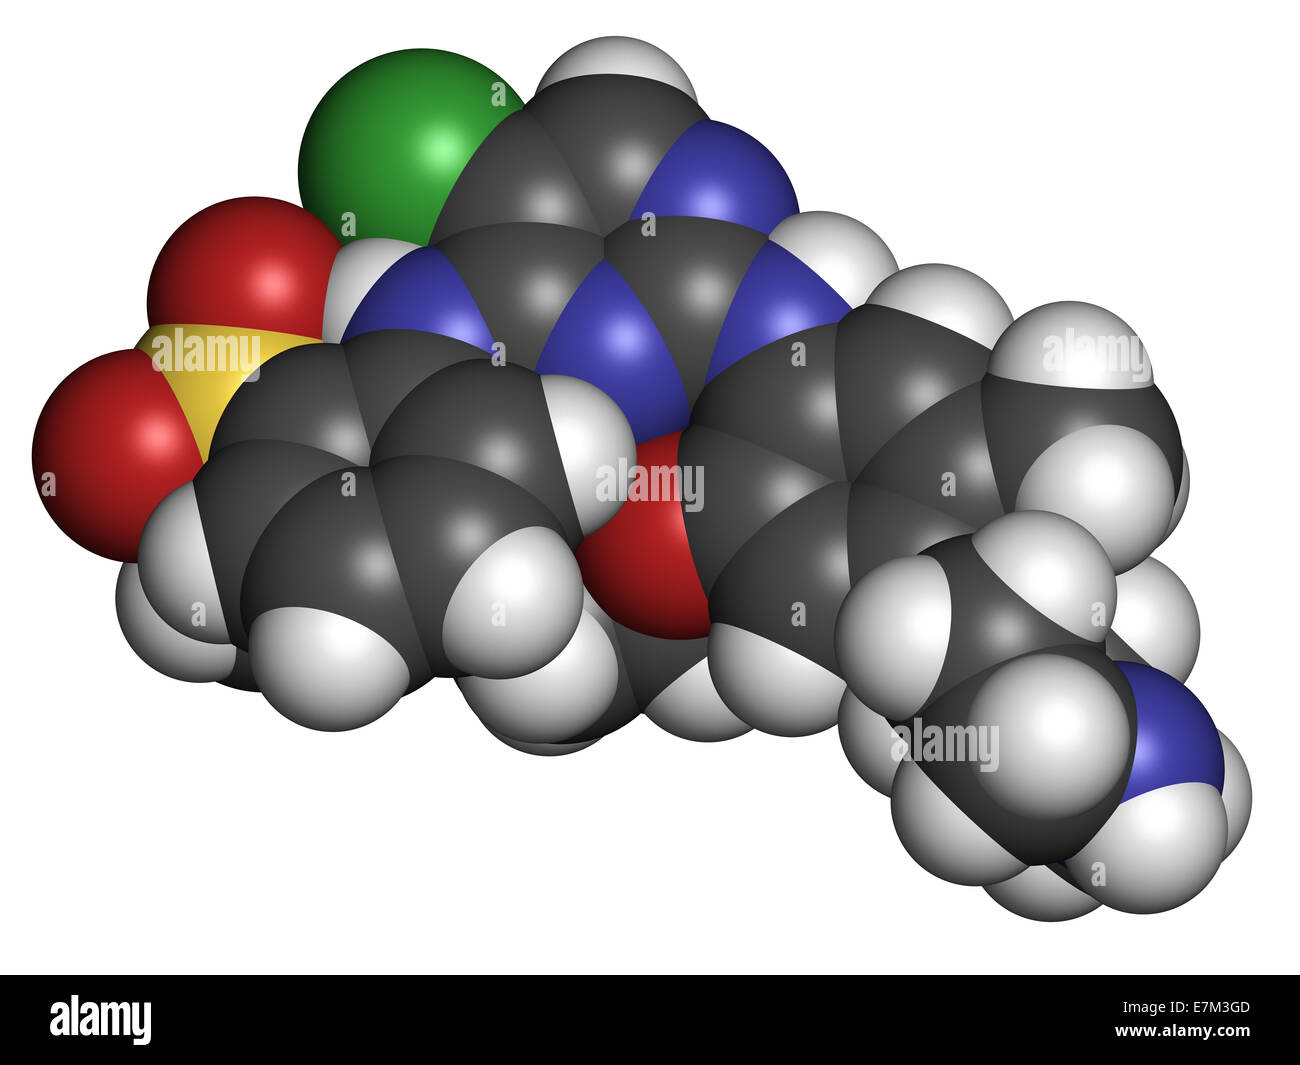 Ceritinib cancer drug molecule. ALK inhibitor used in treatment of metastatic non-small cell lung cancer. Atoms - Stock Image